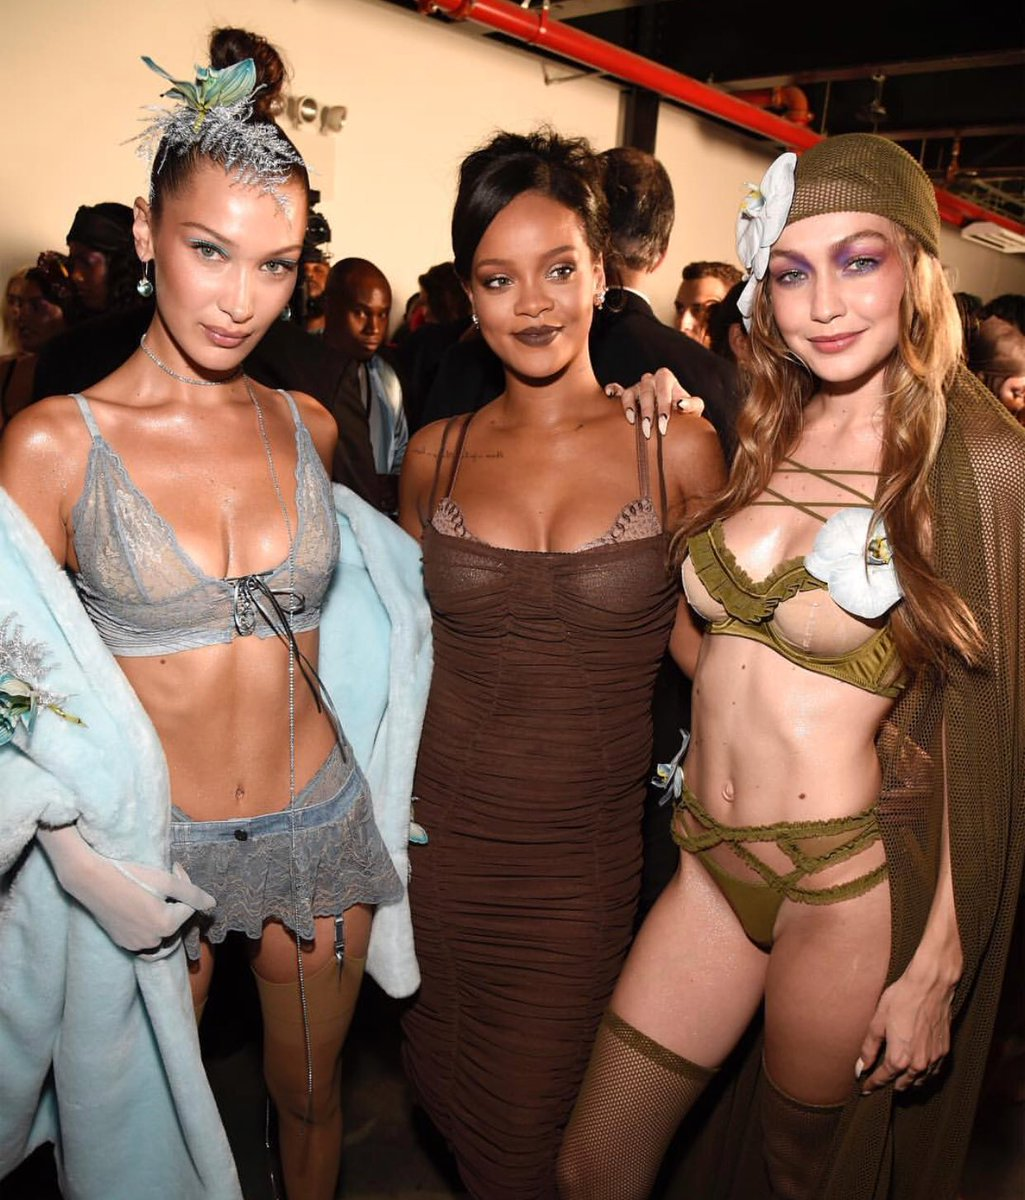 Gigi and Bella Hadid lead the lingerie-laden runway in sizzling ensembles as they storm Rihanna's VERY sexy Savage x Fenty NYFW showcase